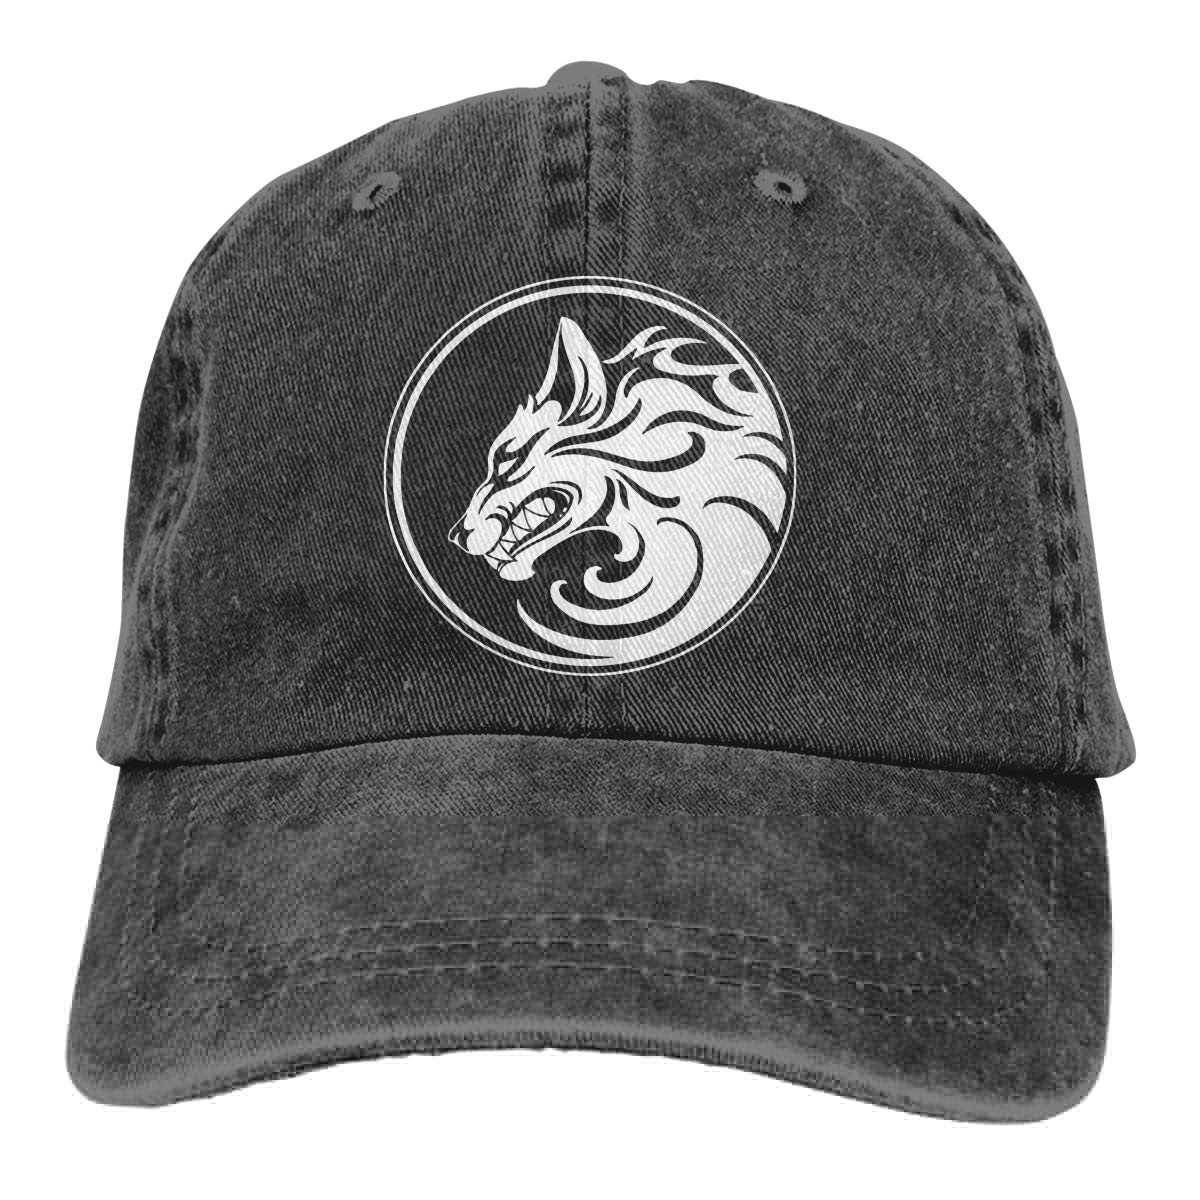 Roaring Wolf Unisex Adult Cowboy Hat Hip Hop Cap Adjustable Truck Driver Hat